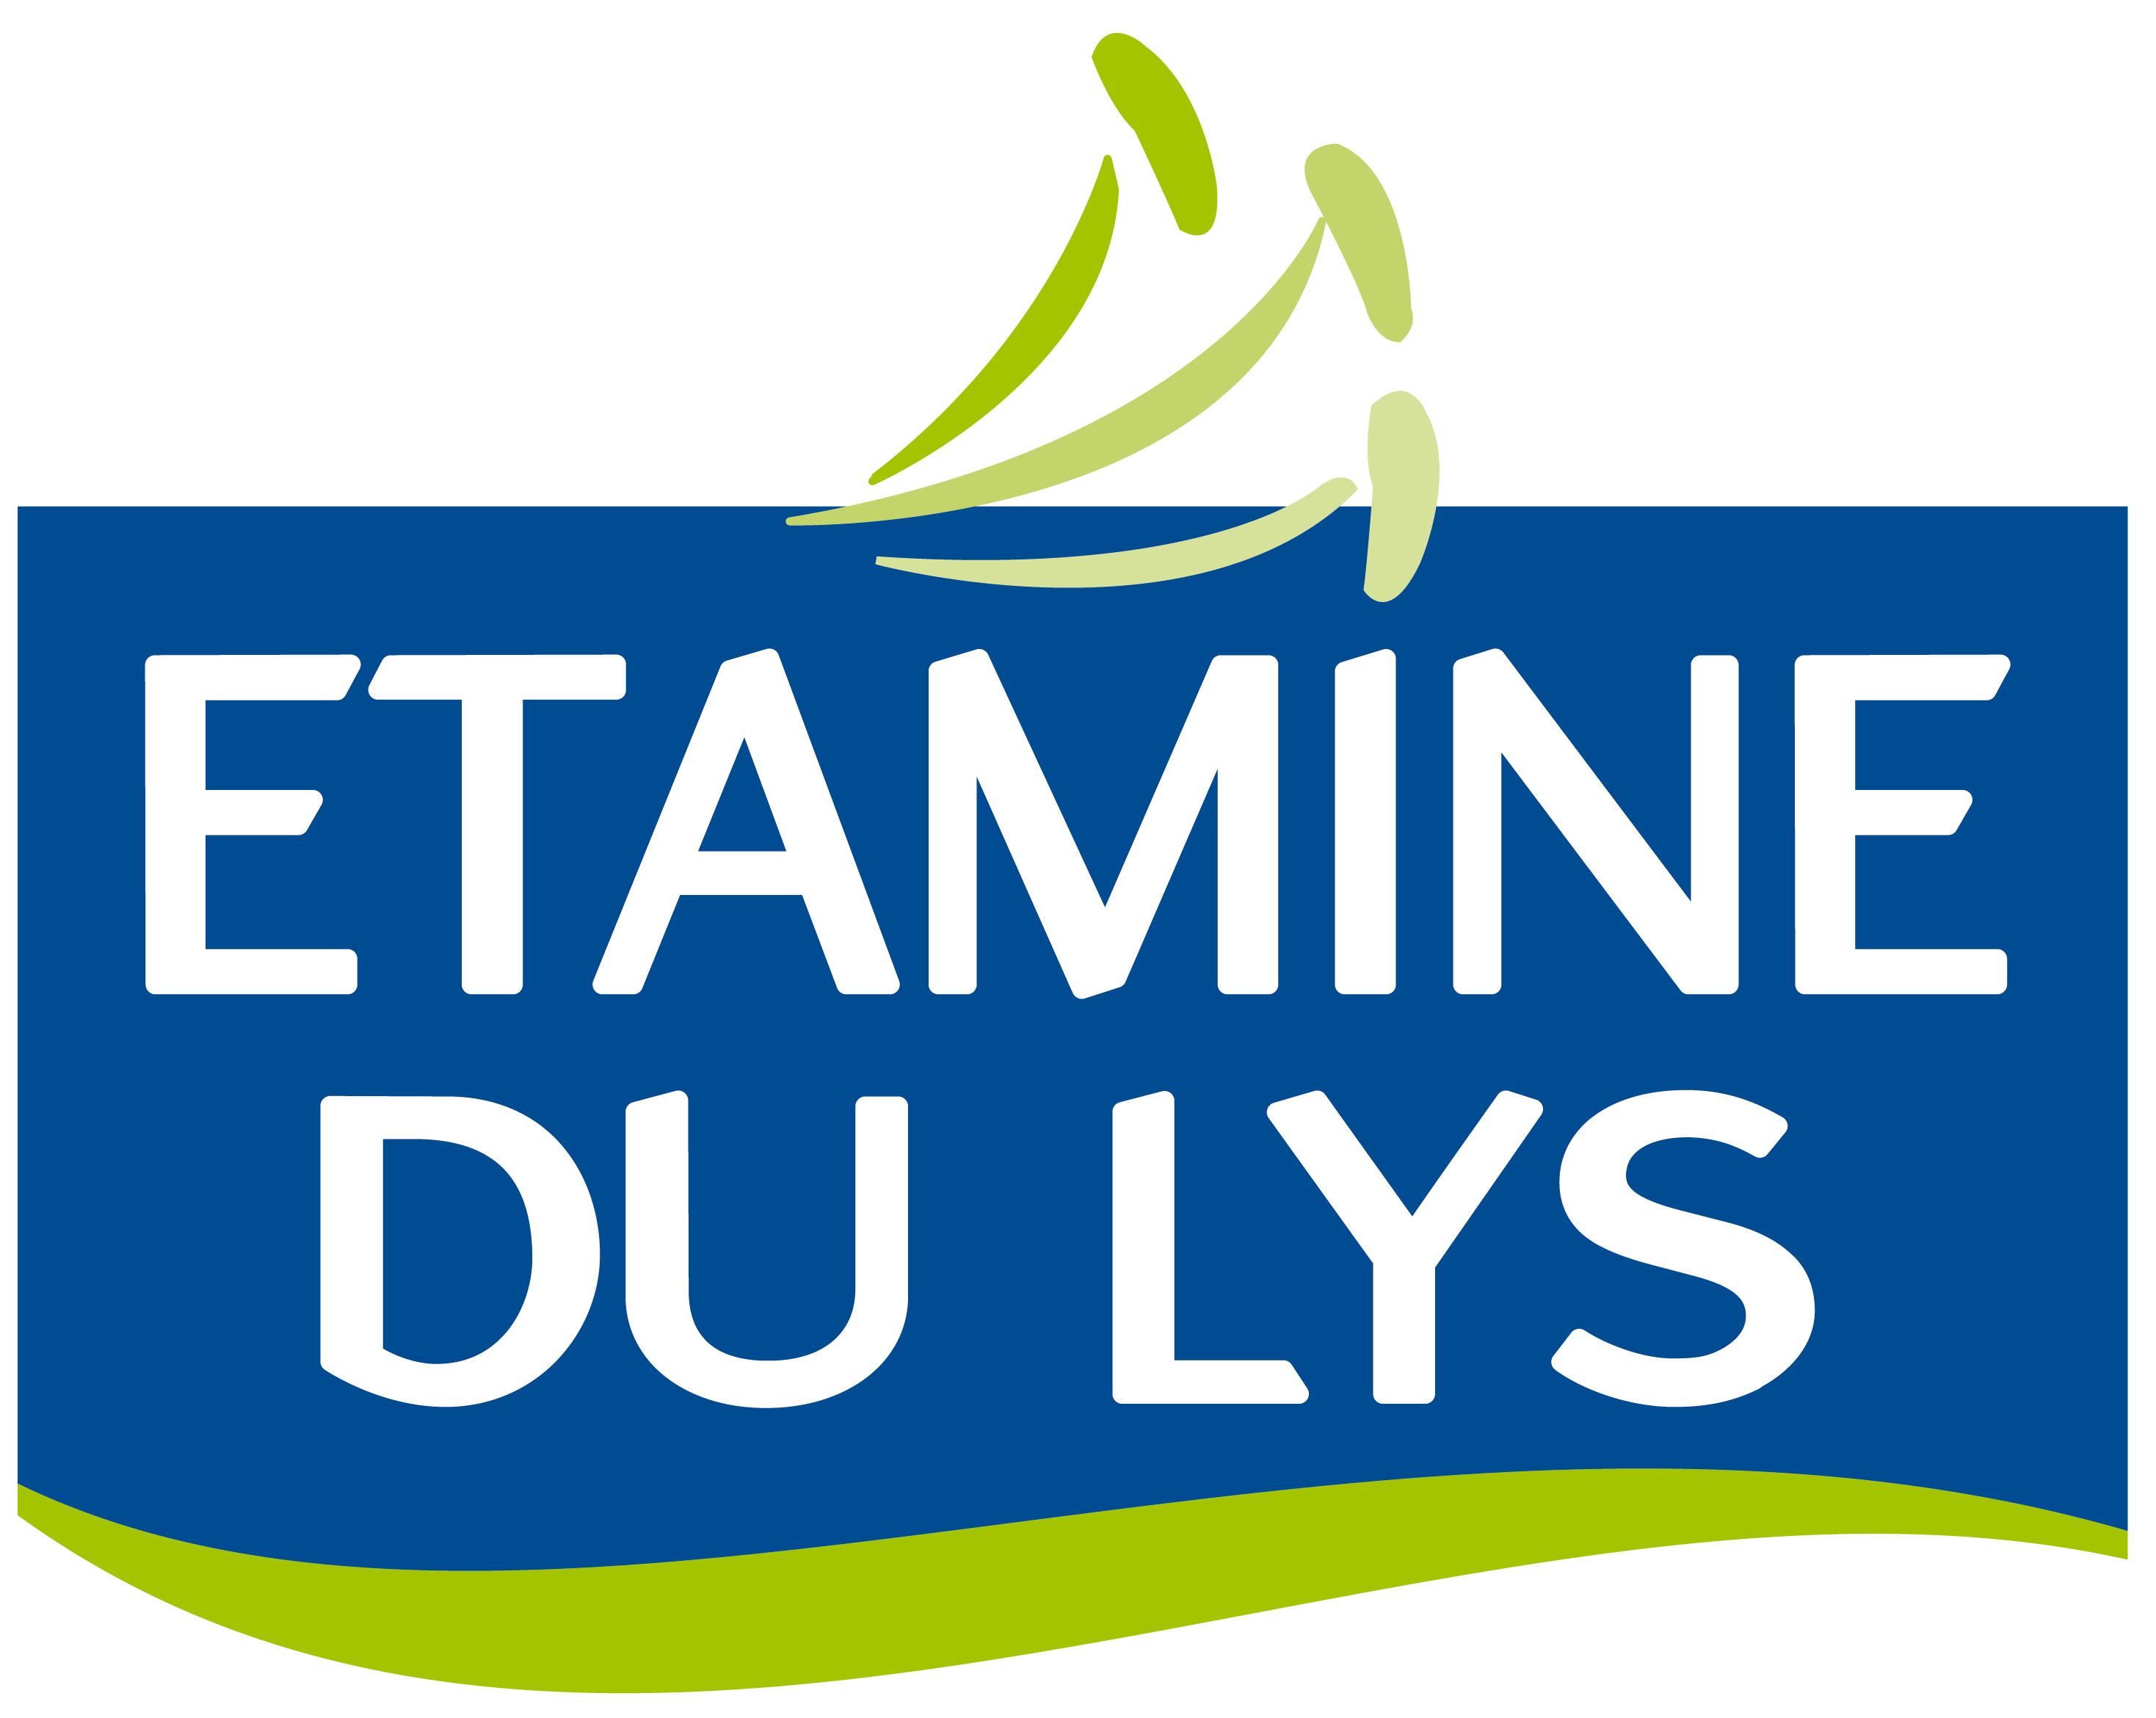 log-Étamine-du-lys-2010